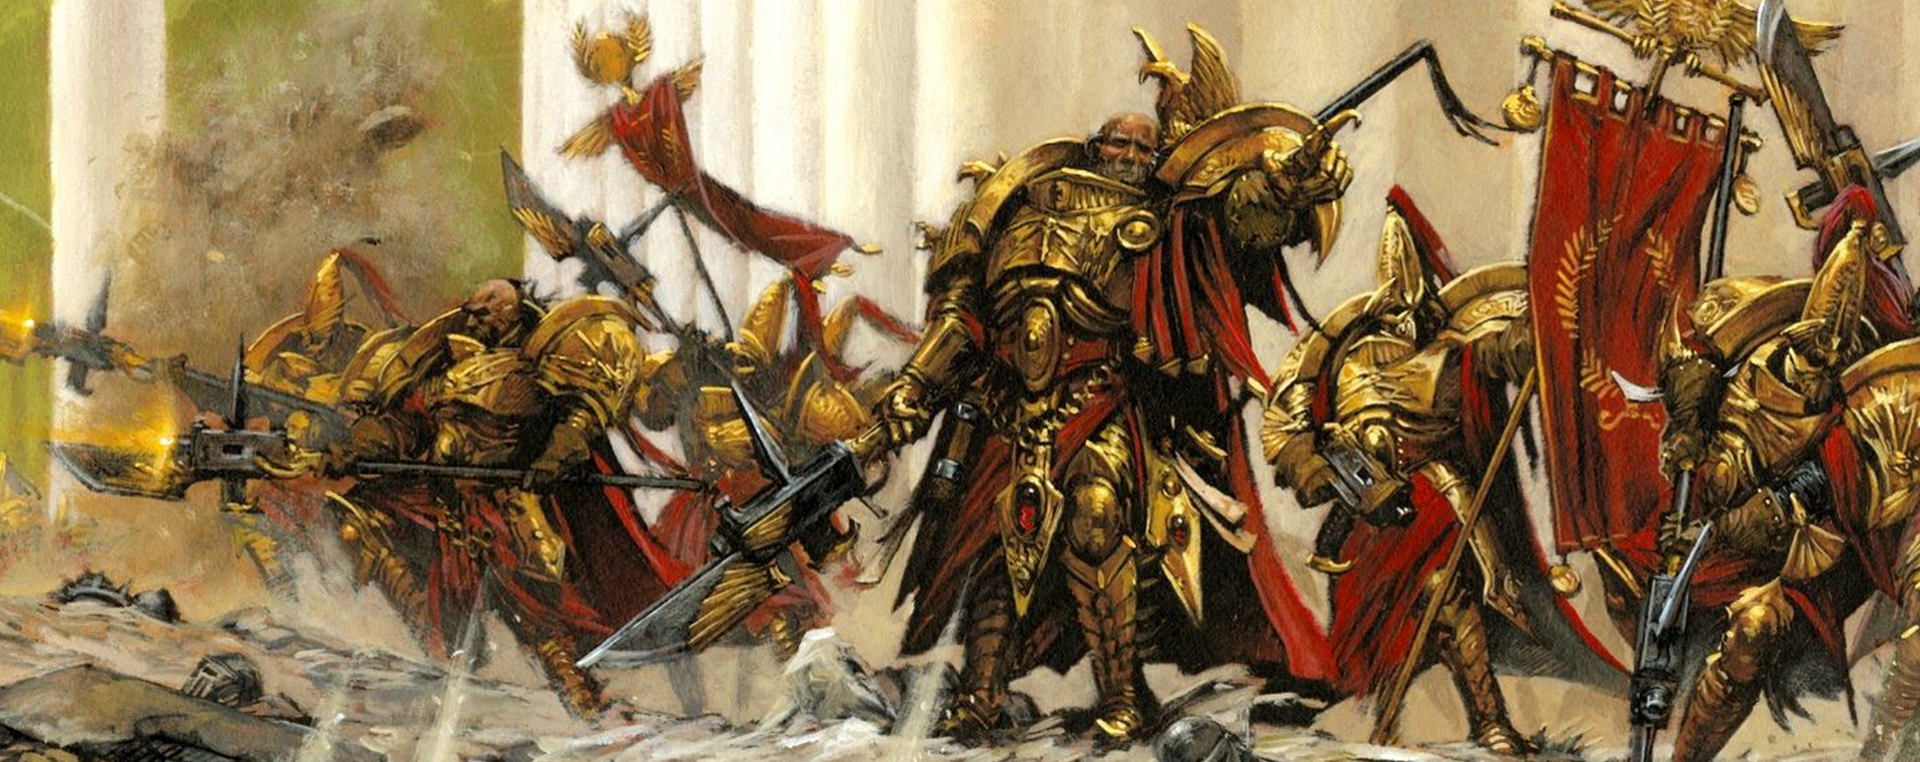 7th - Erik TOk: 91.82 - Adeptus Custodes - Beast Coast